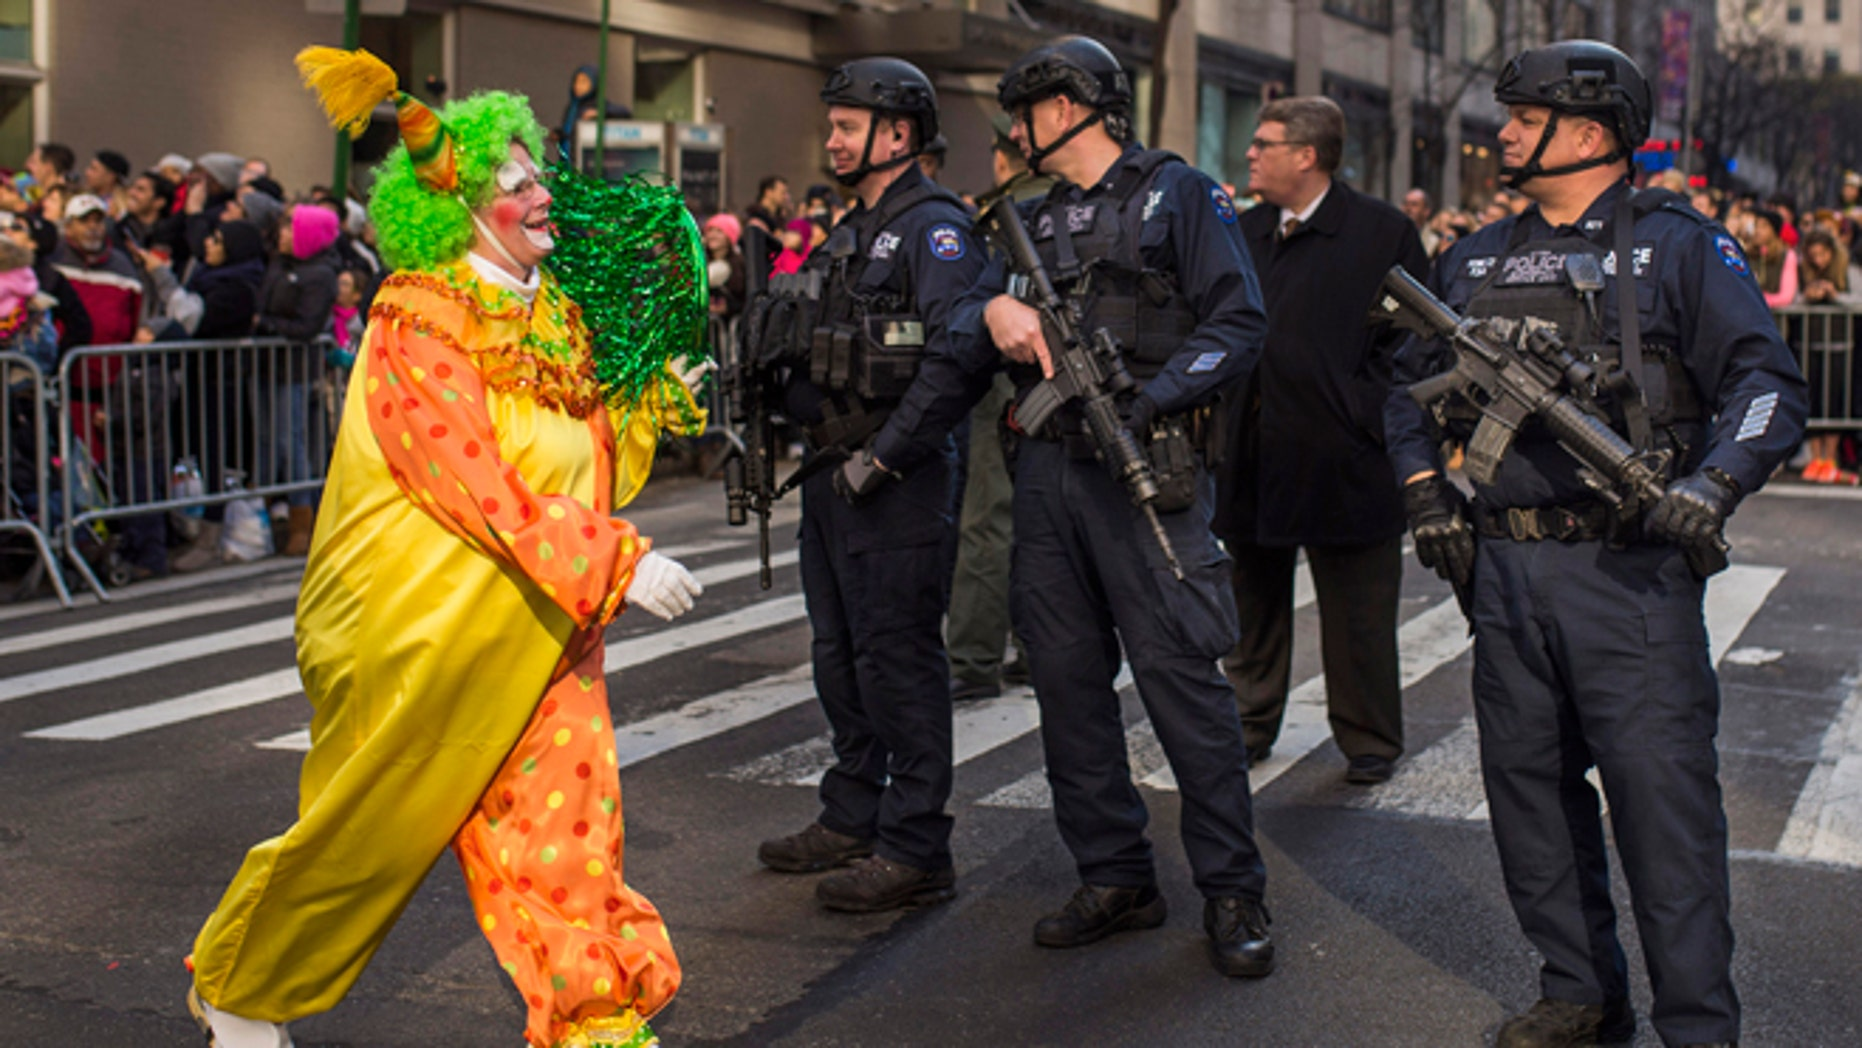 Nov. 26, 2015: A clown marches by heavily armed police stand guard during the Macy's Thanksgiving Day Parade in New York.